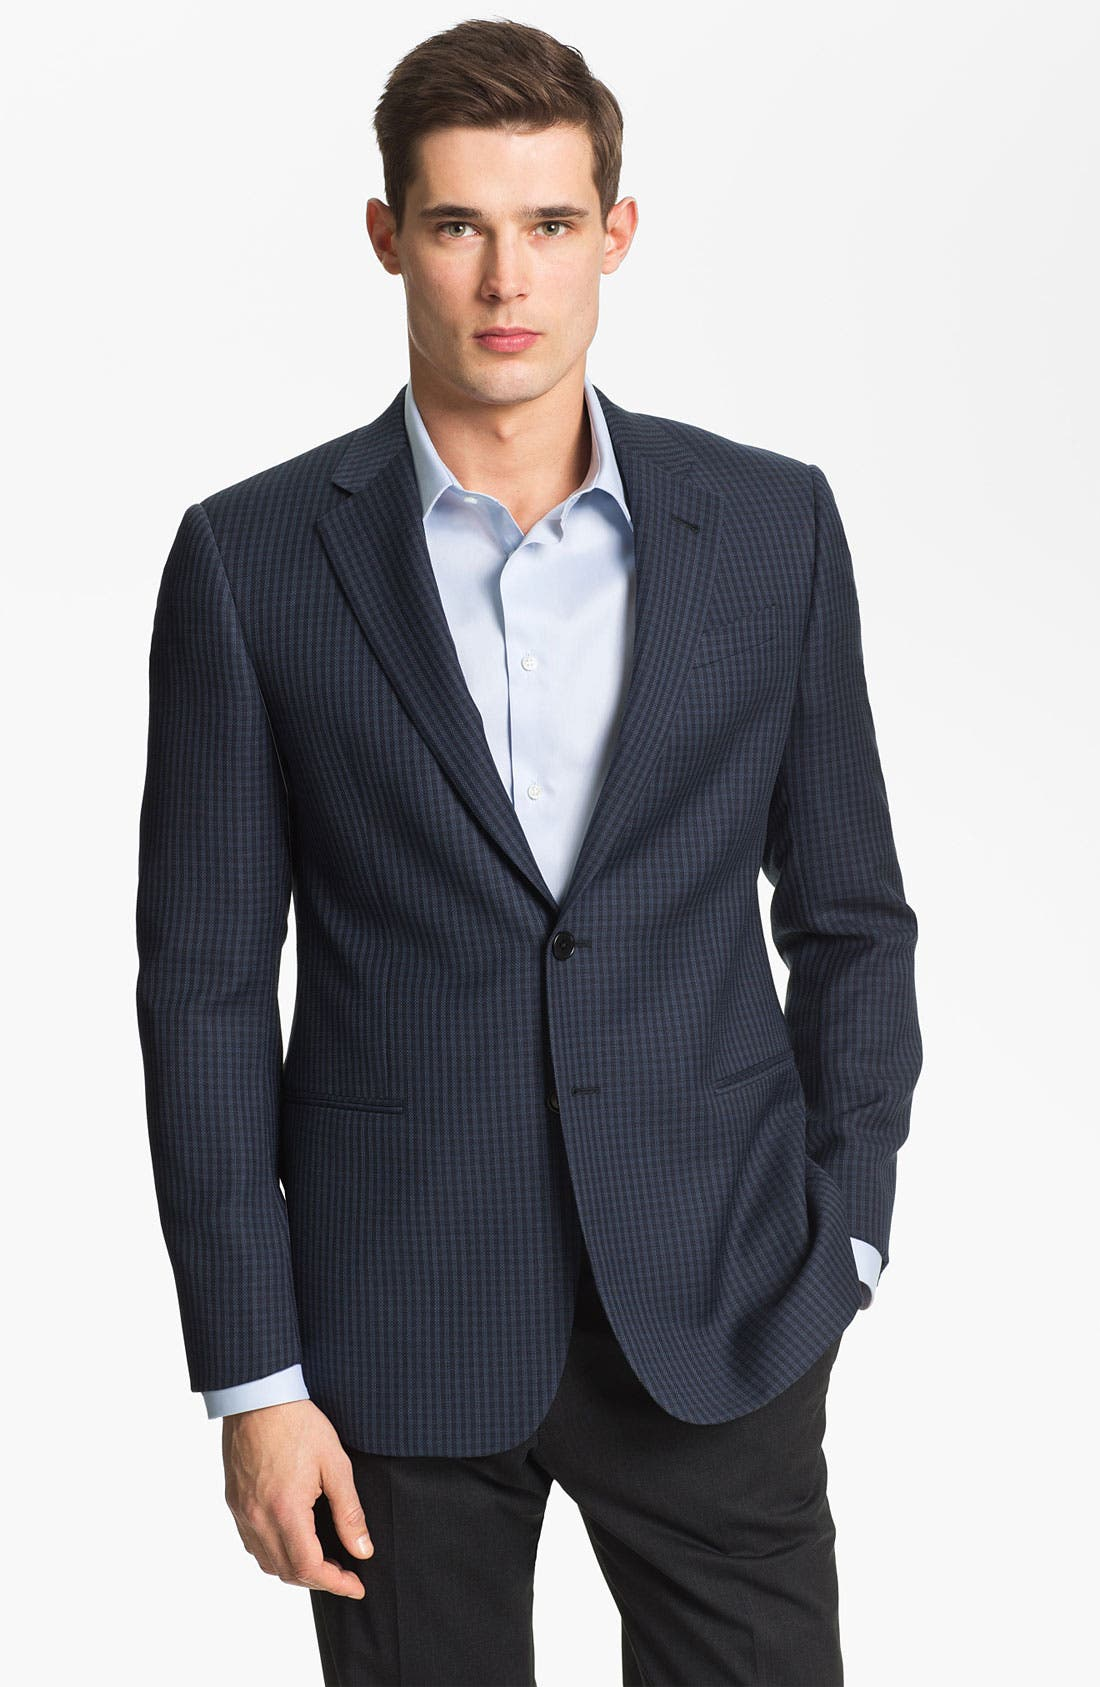 Alternate Image 1 Selected - Armani Collezioni 'Giorgio' Trim Fit Wool Sportcoat